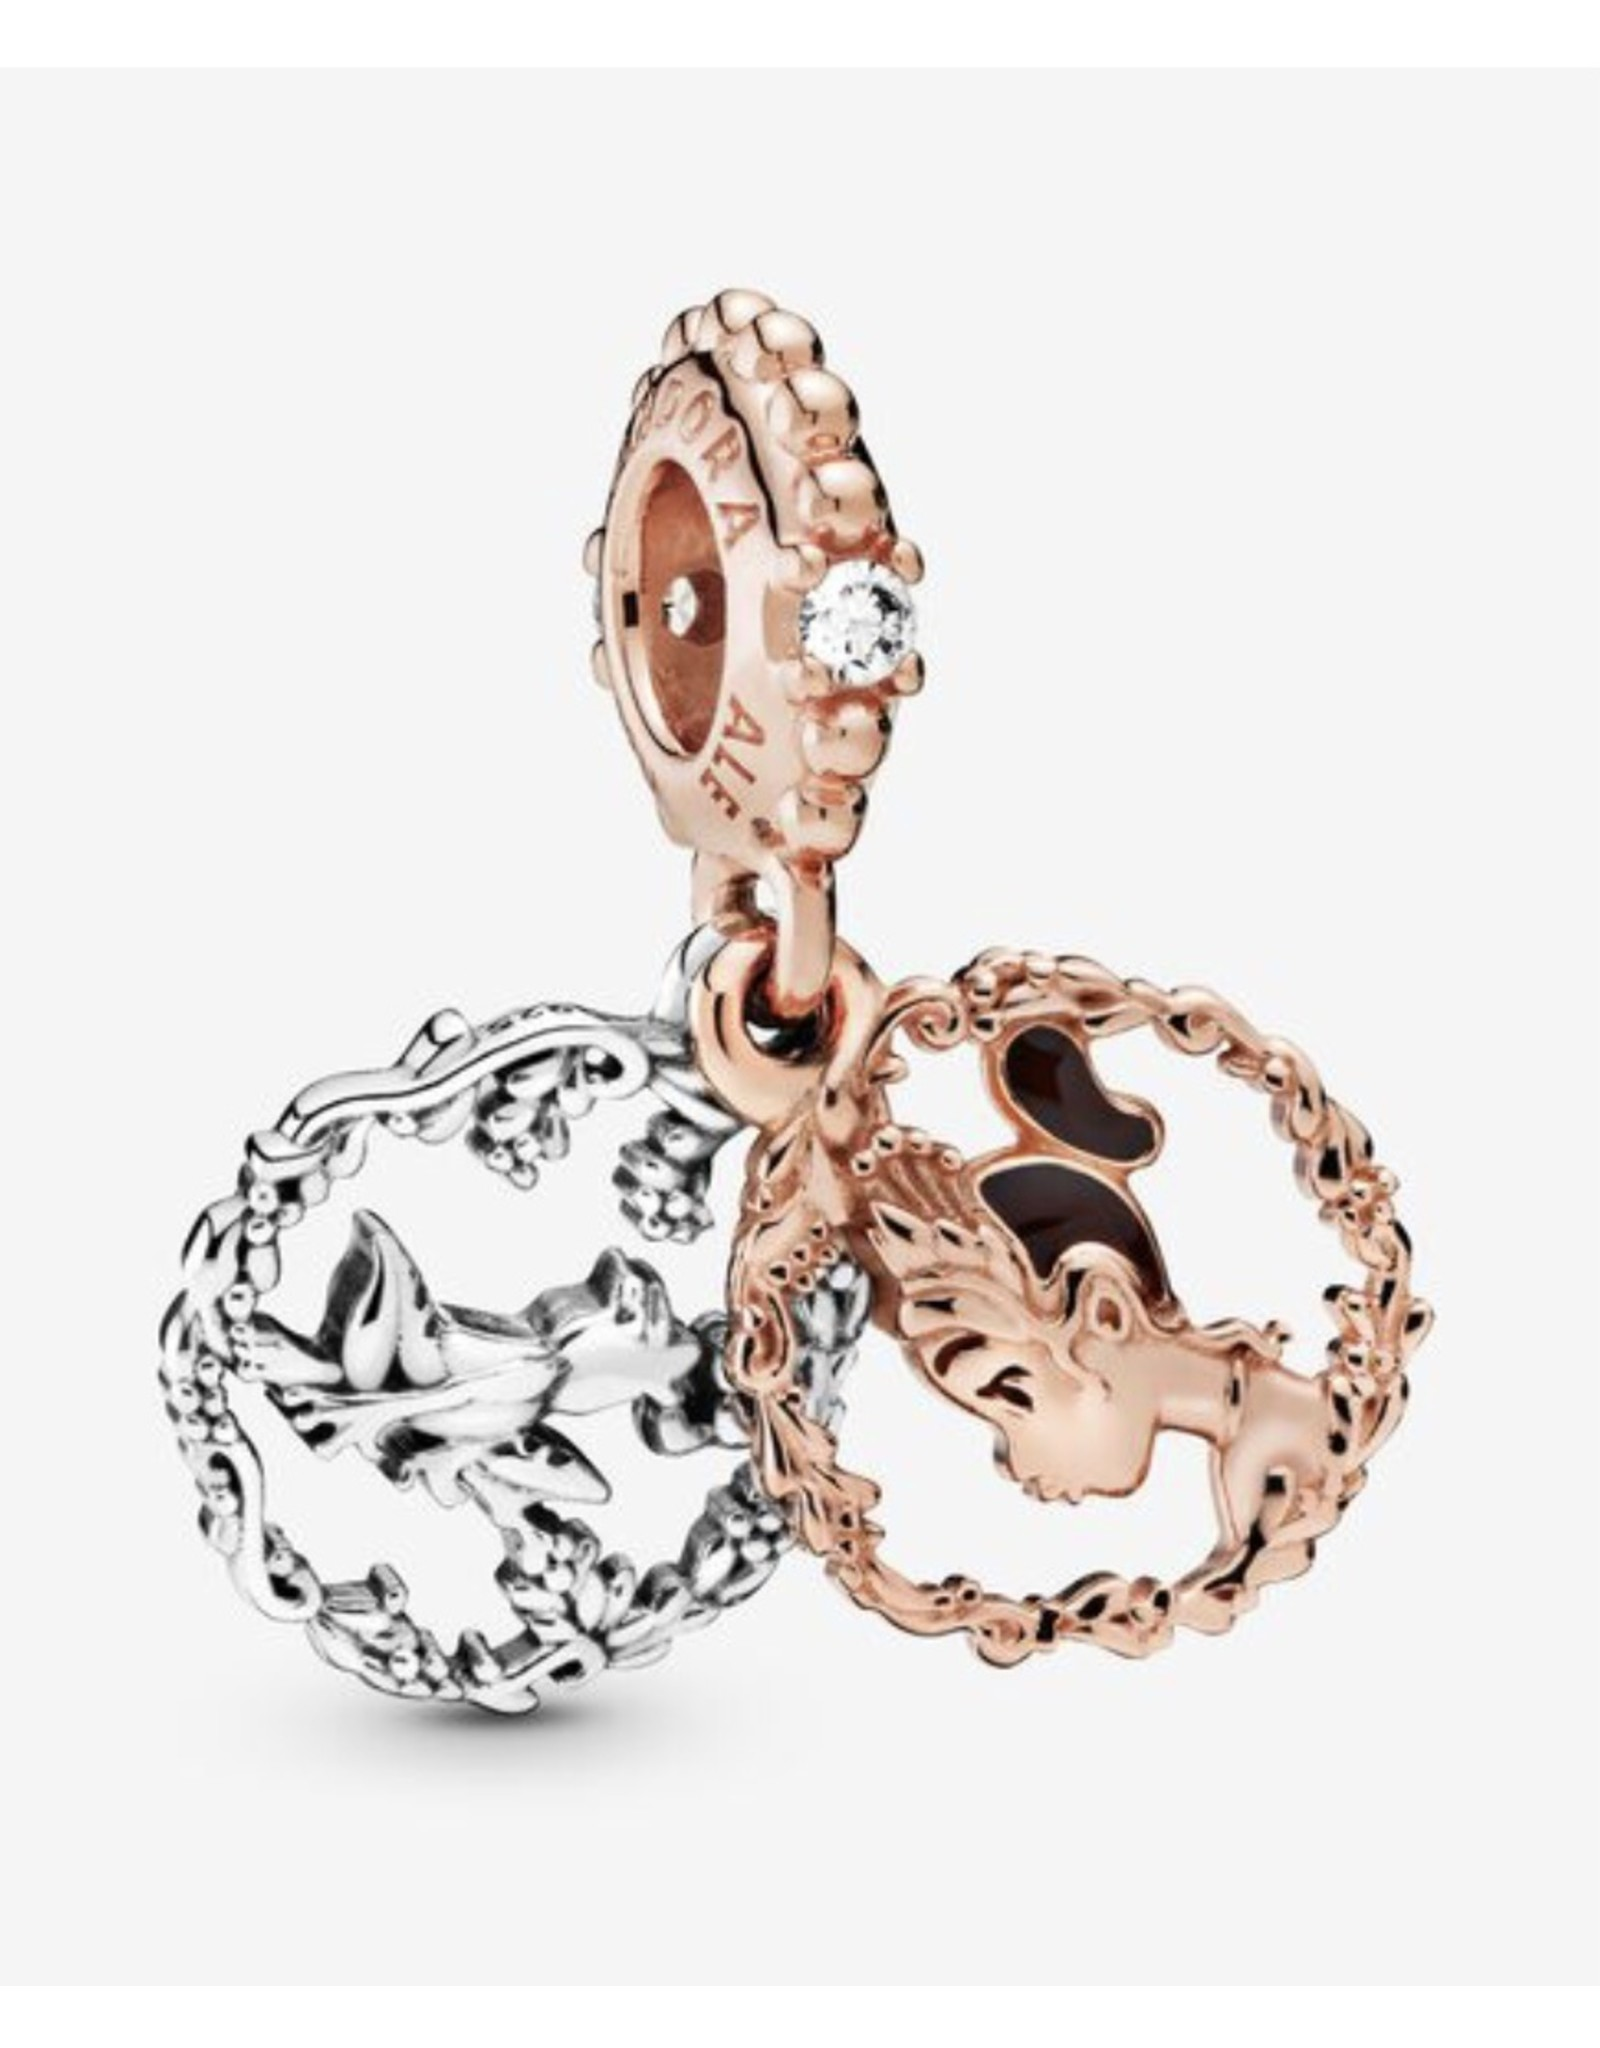 Pandora Pandora Charm,788234CZ, Disney, Tiana Rose Gold & Sterling Silver Clear CZ & Brown Enamel